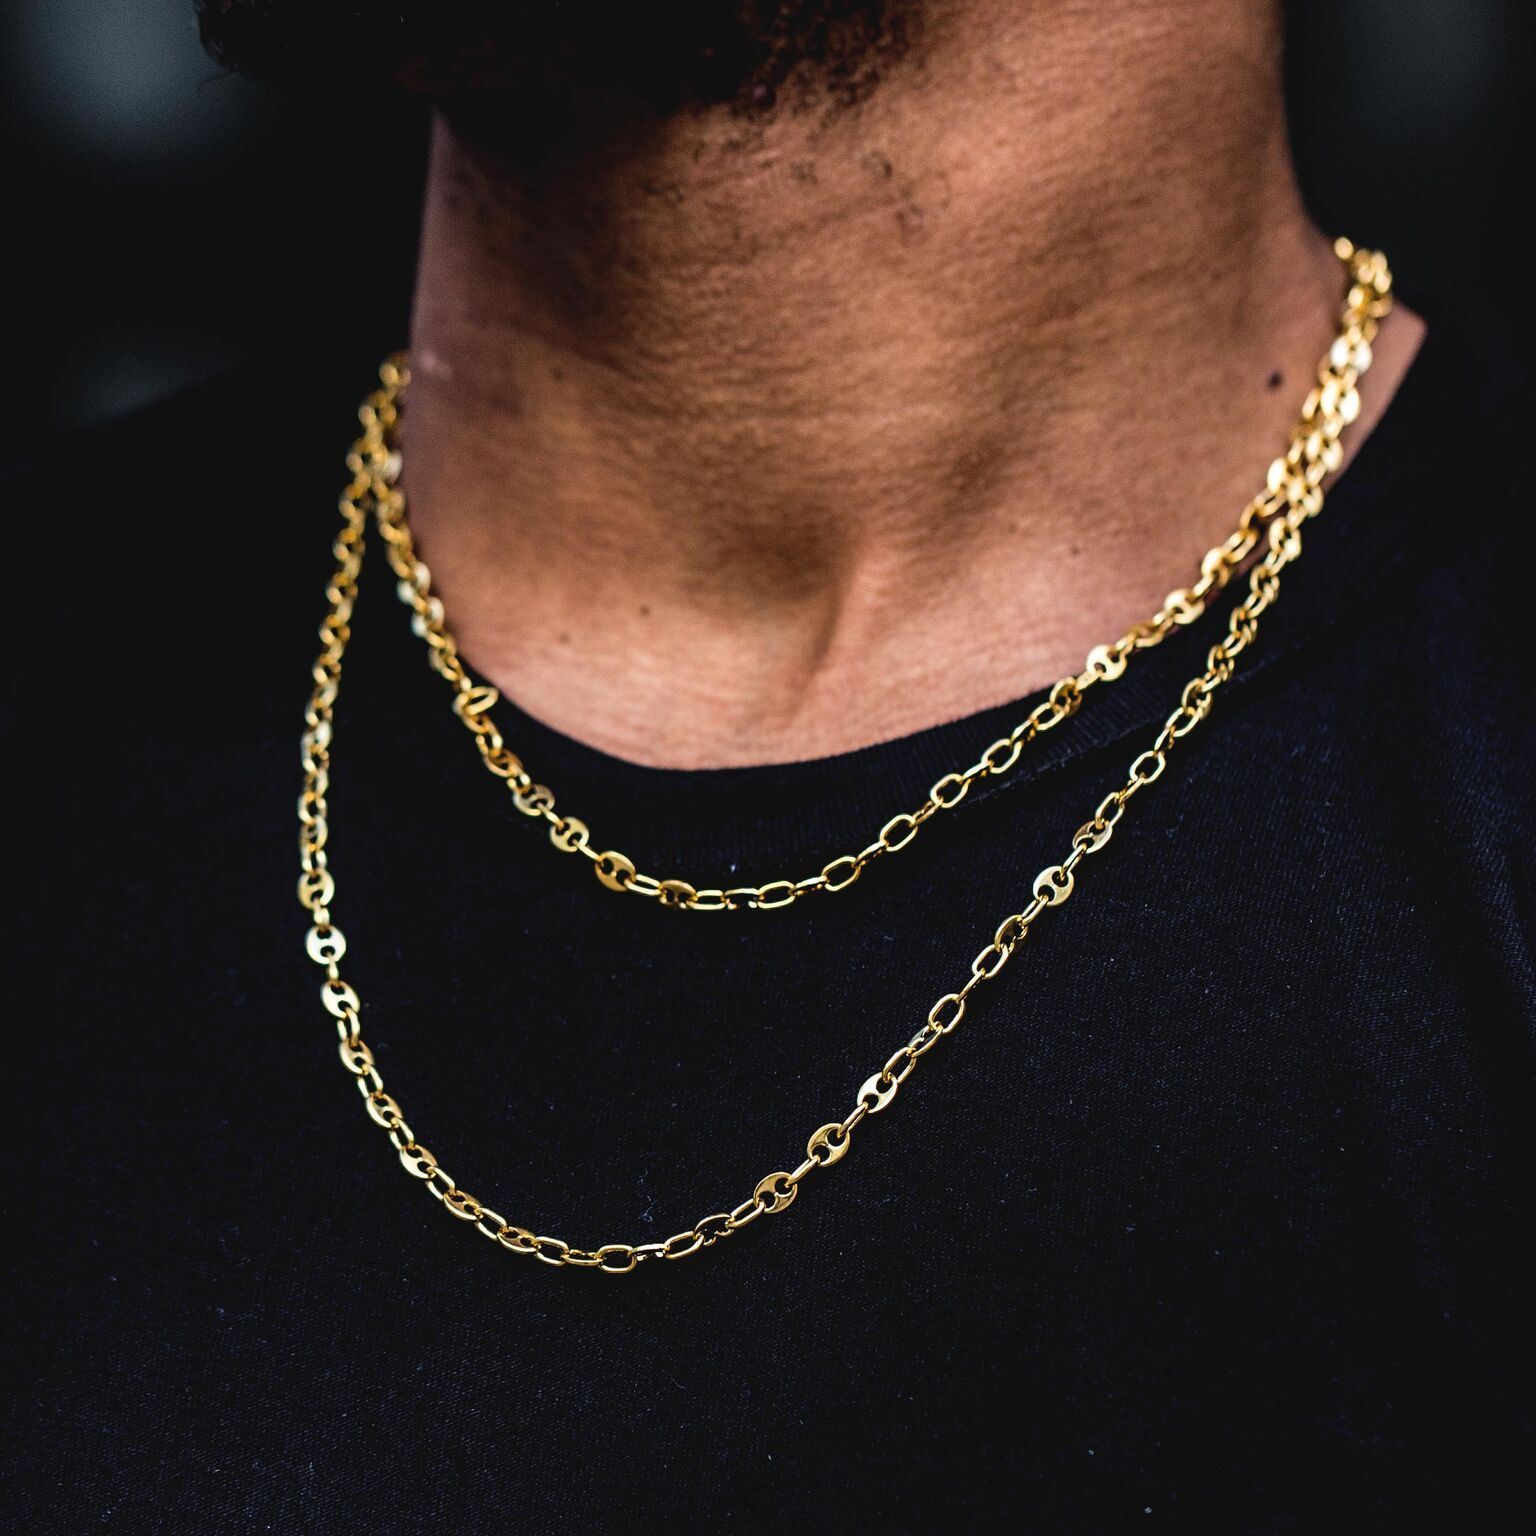 4 5mm Gucci Link Chain The Gld Shop